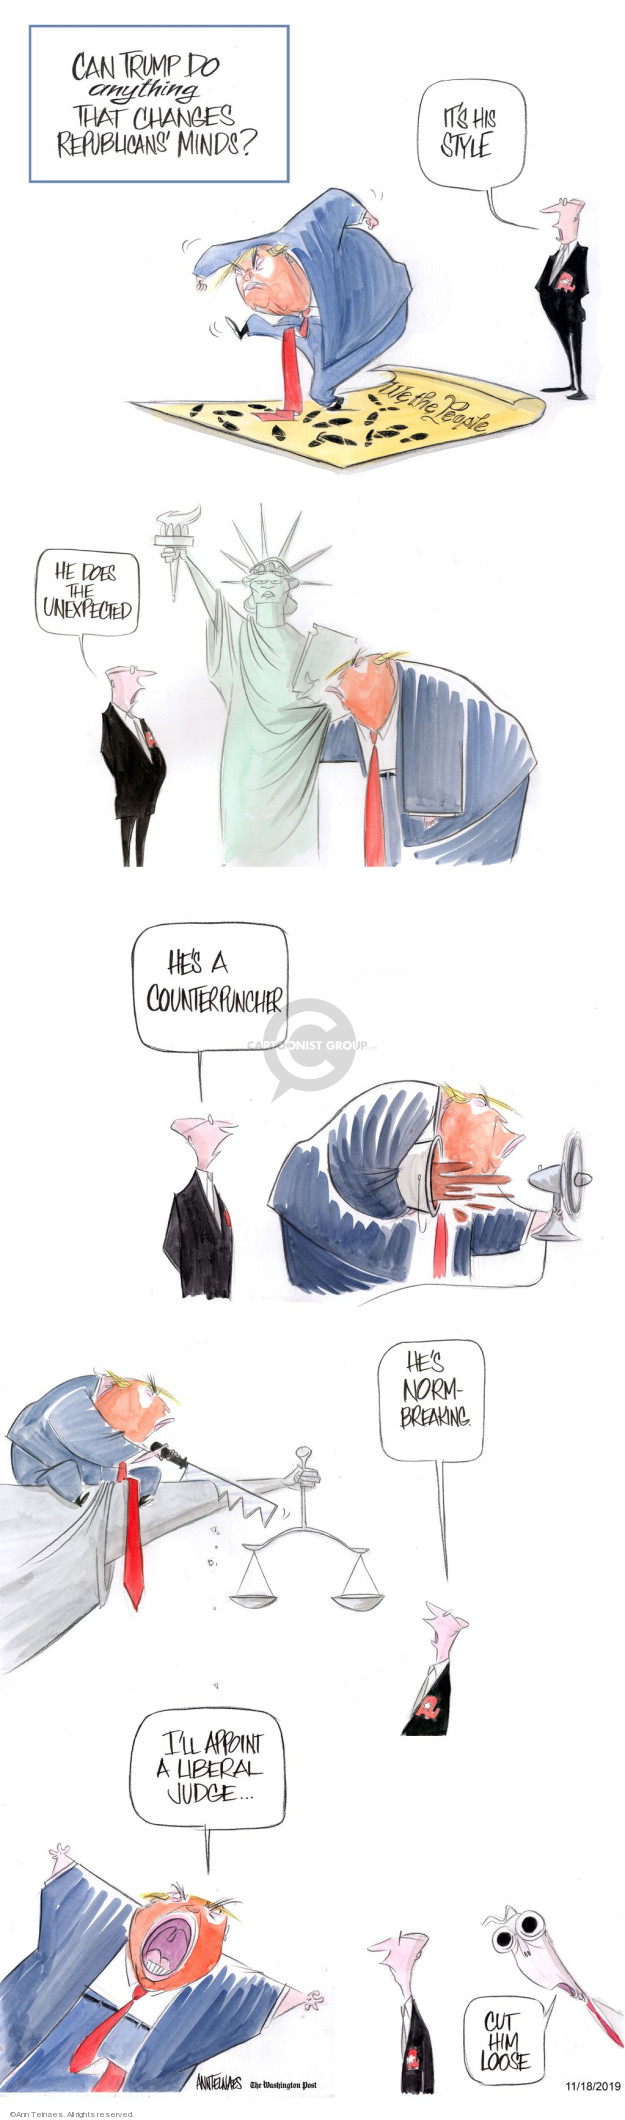 Cartoonist Ann Telnaes  Ann Telnaes' Editorial Cartoons 2019-11-18 Lady Justice